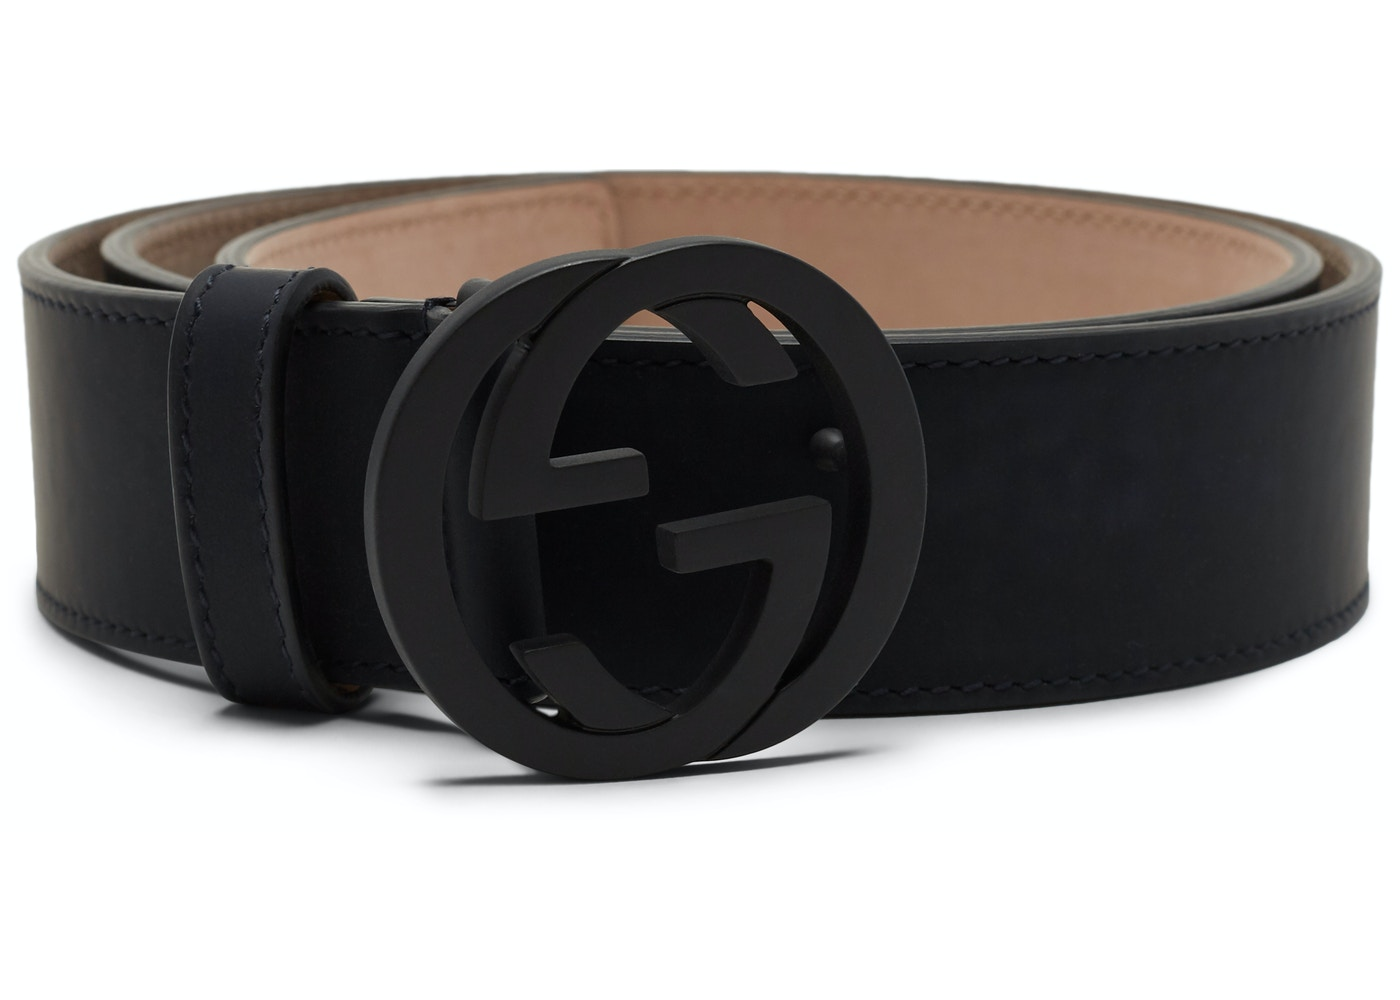 2ce751381 Gucci Leather Belt Interlocking G Matte Black Buckle Navy Blue. Interlocking  G Matte Black Buckle Navy Blue